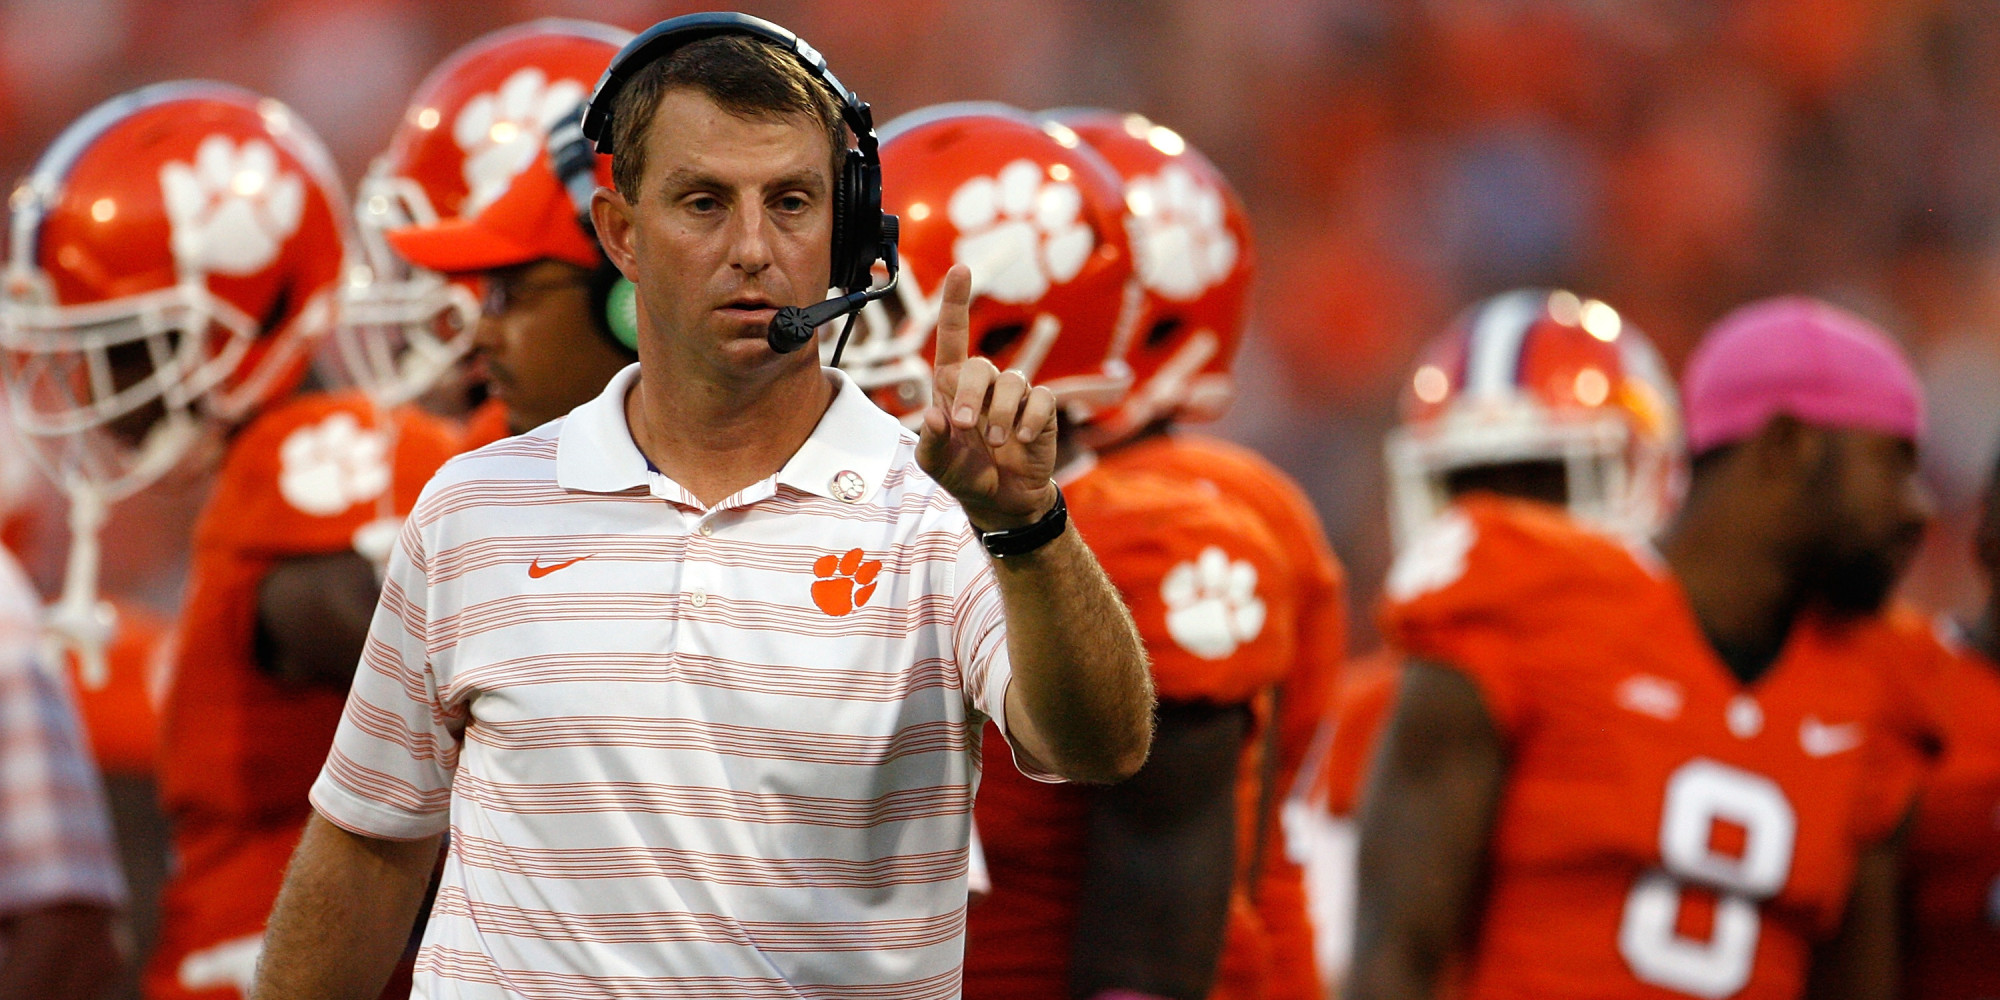 After Outcry, Clemson Football Coach Dabo Swinney Says No ...